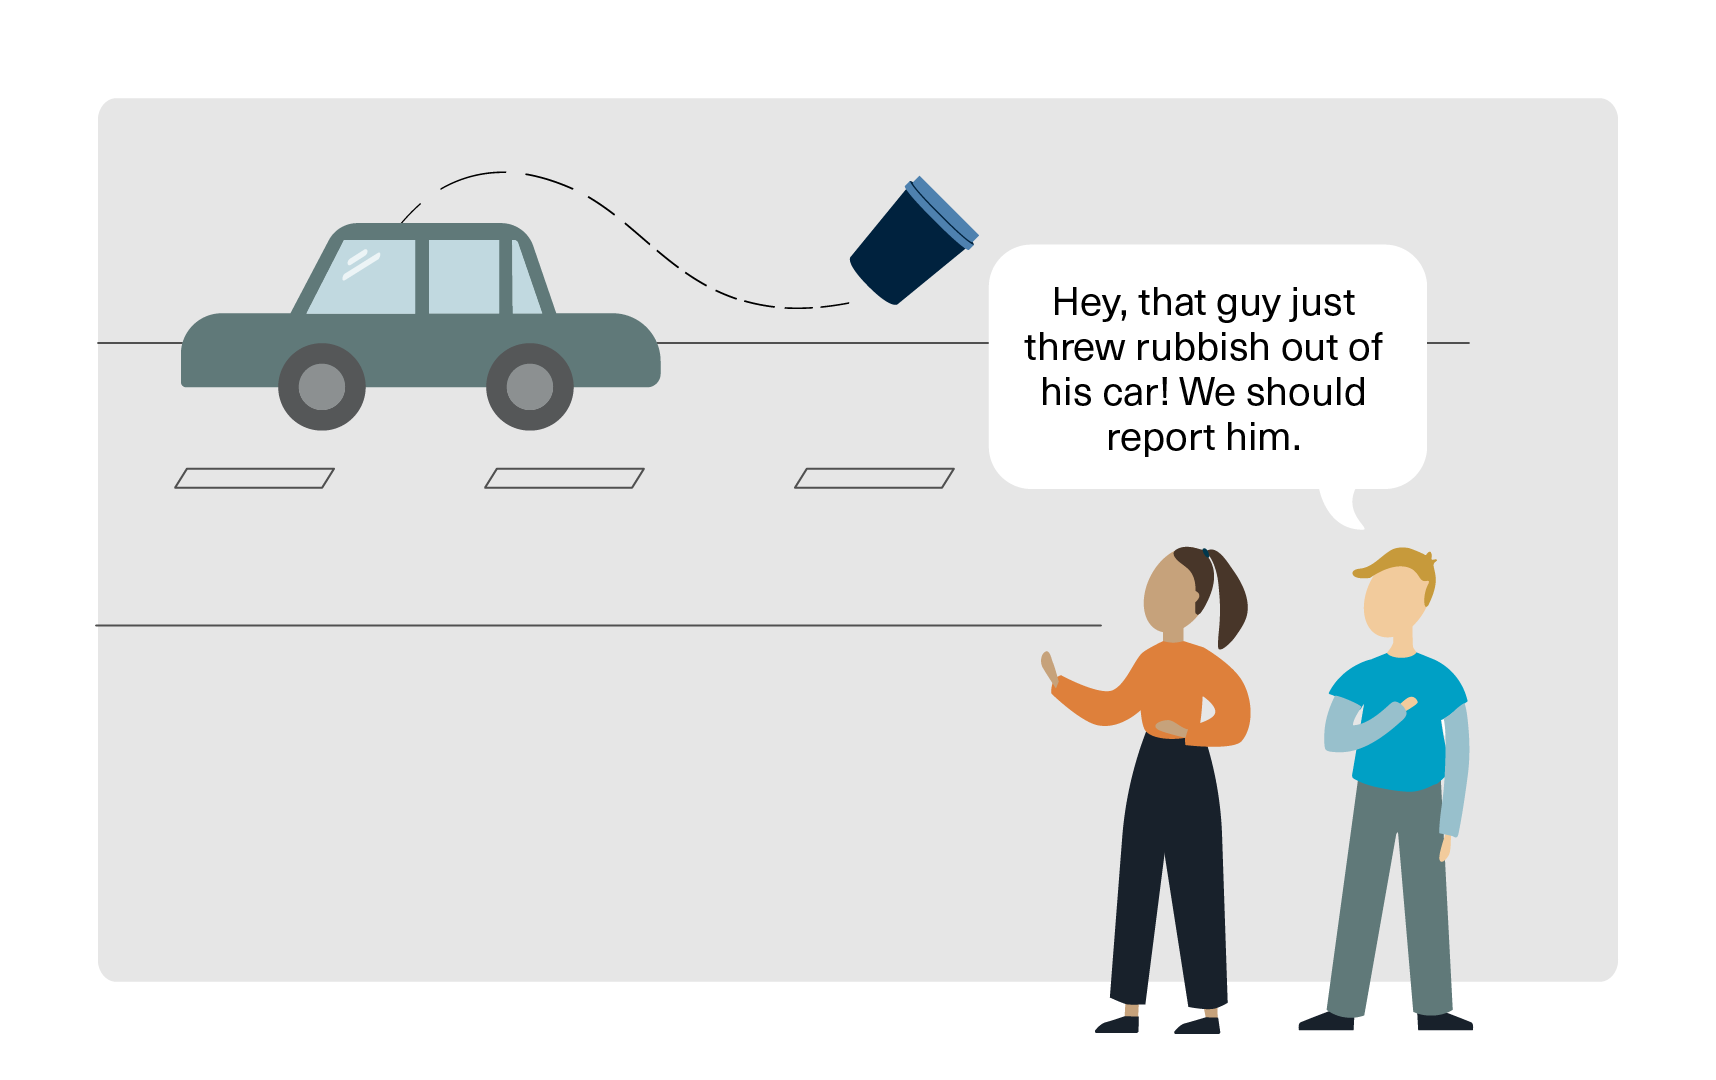 """Picture of a car driving past, throwing a coffee cup out the window. Two people who are watching say: """"Hey, that guy just threw rubbish out of his car! We should report him."""""""